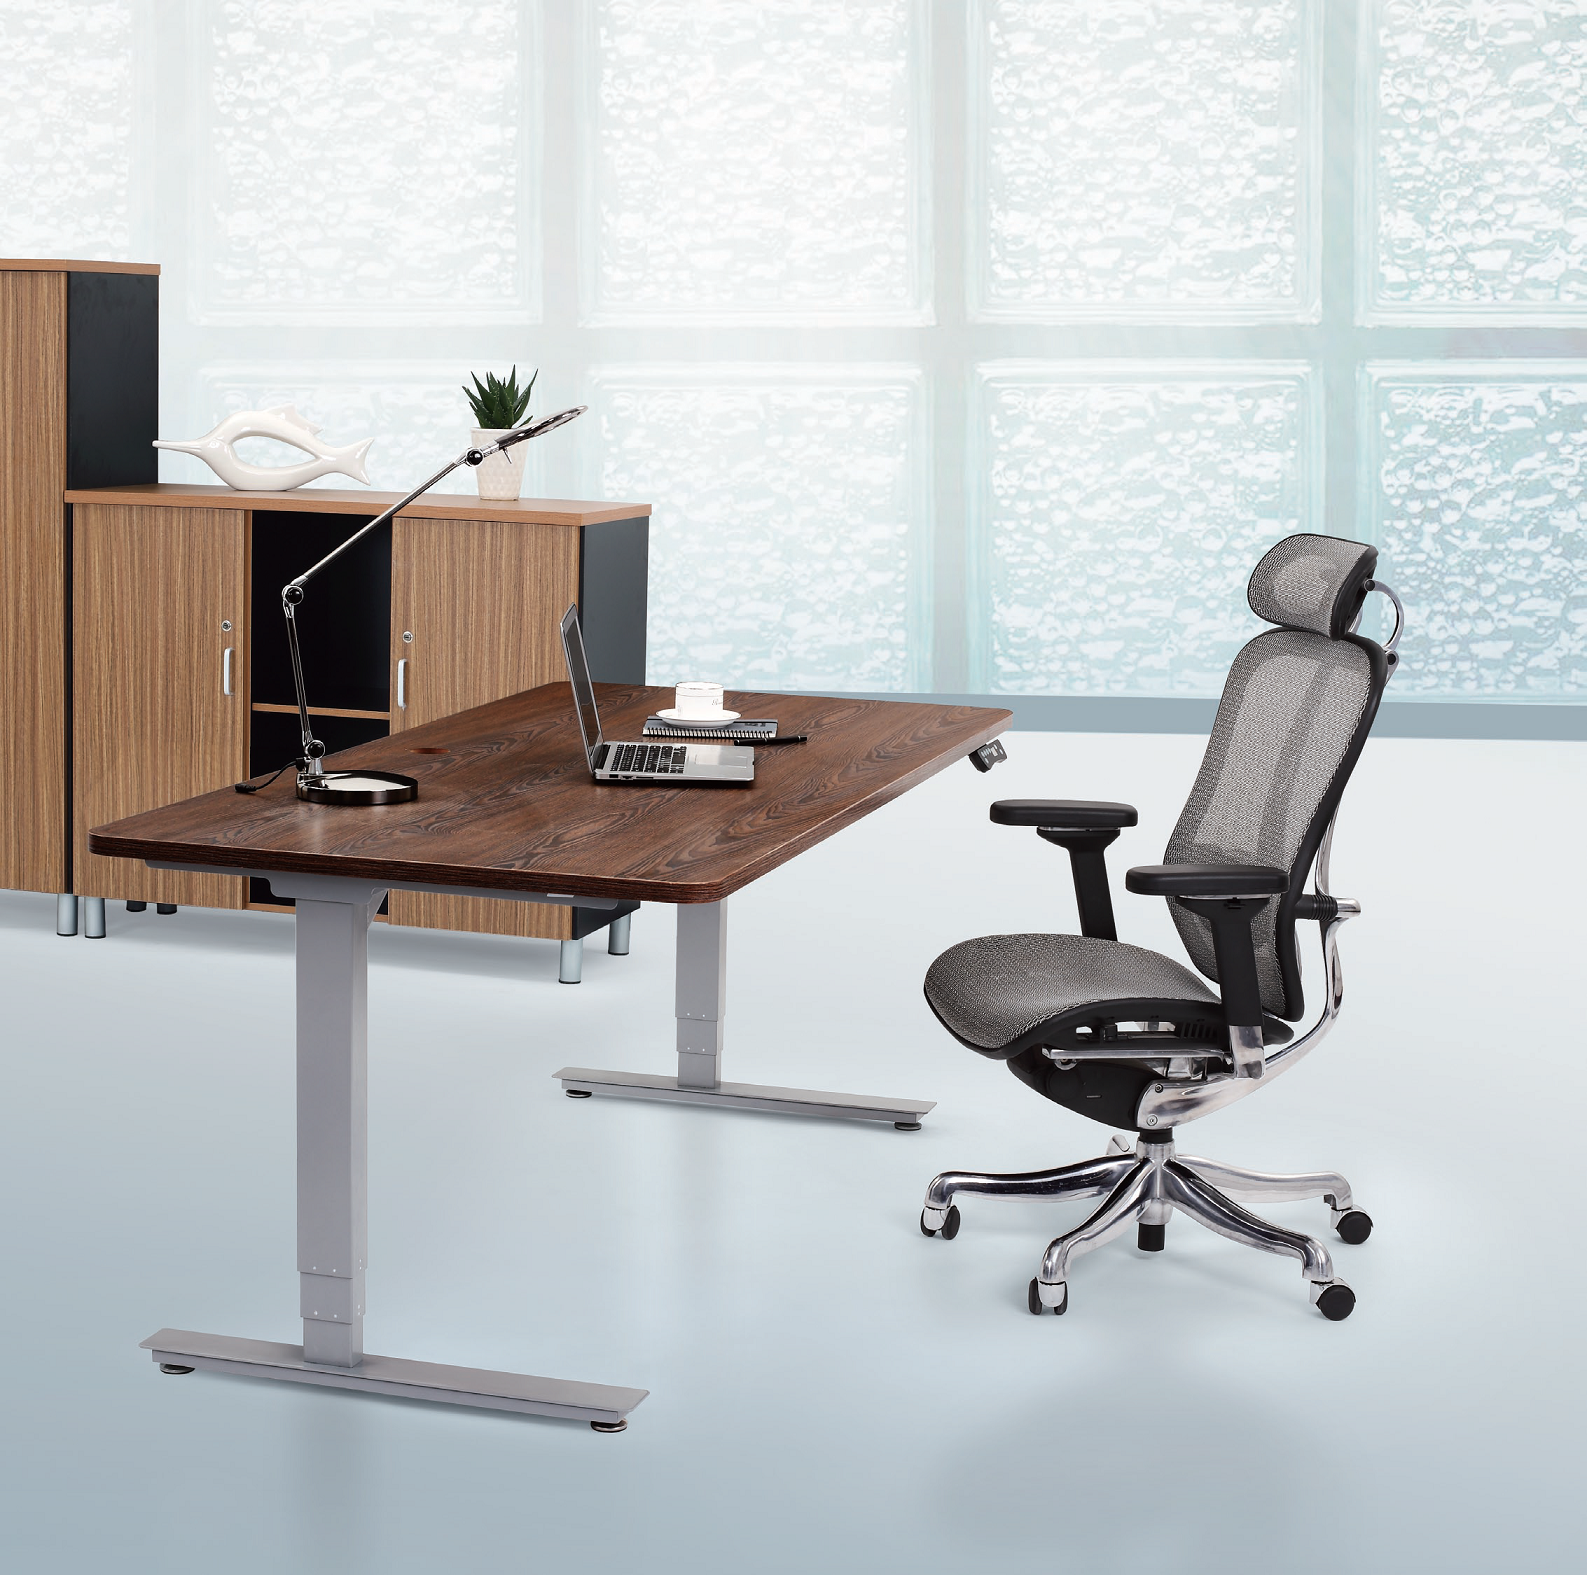 Best Electric Height Adjustable Ergonomic Office Standing Desk · View Larger